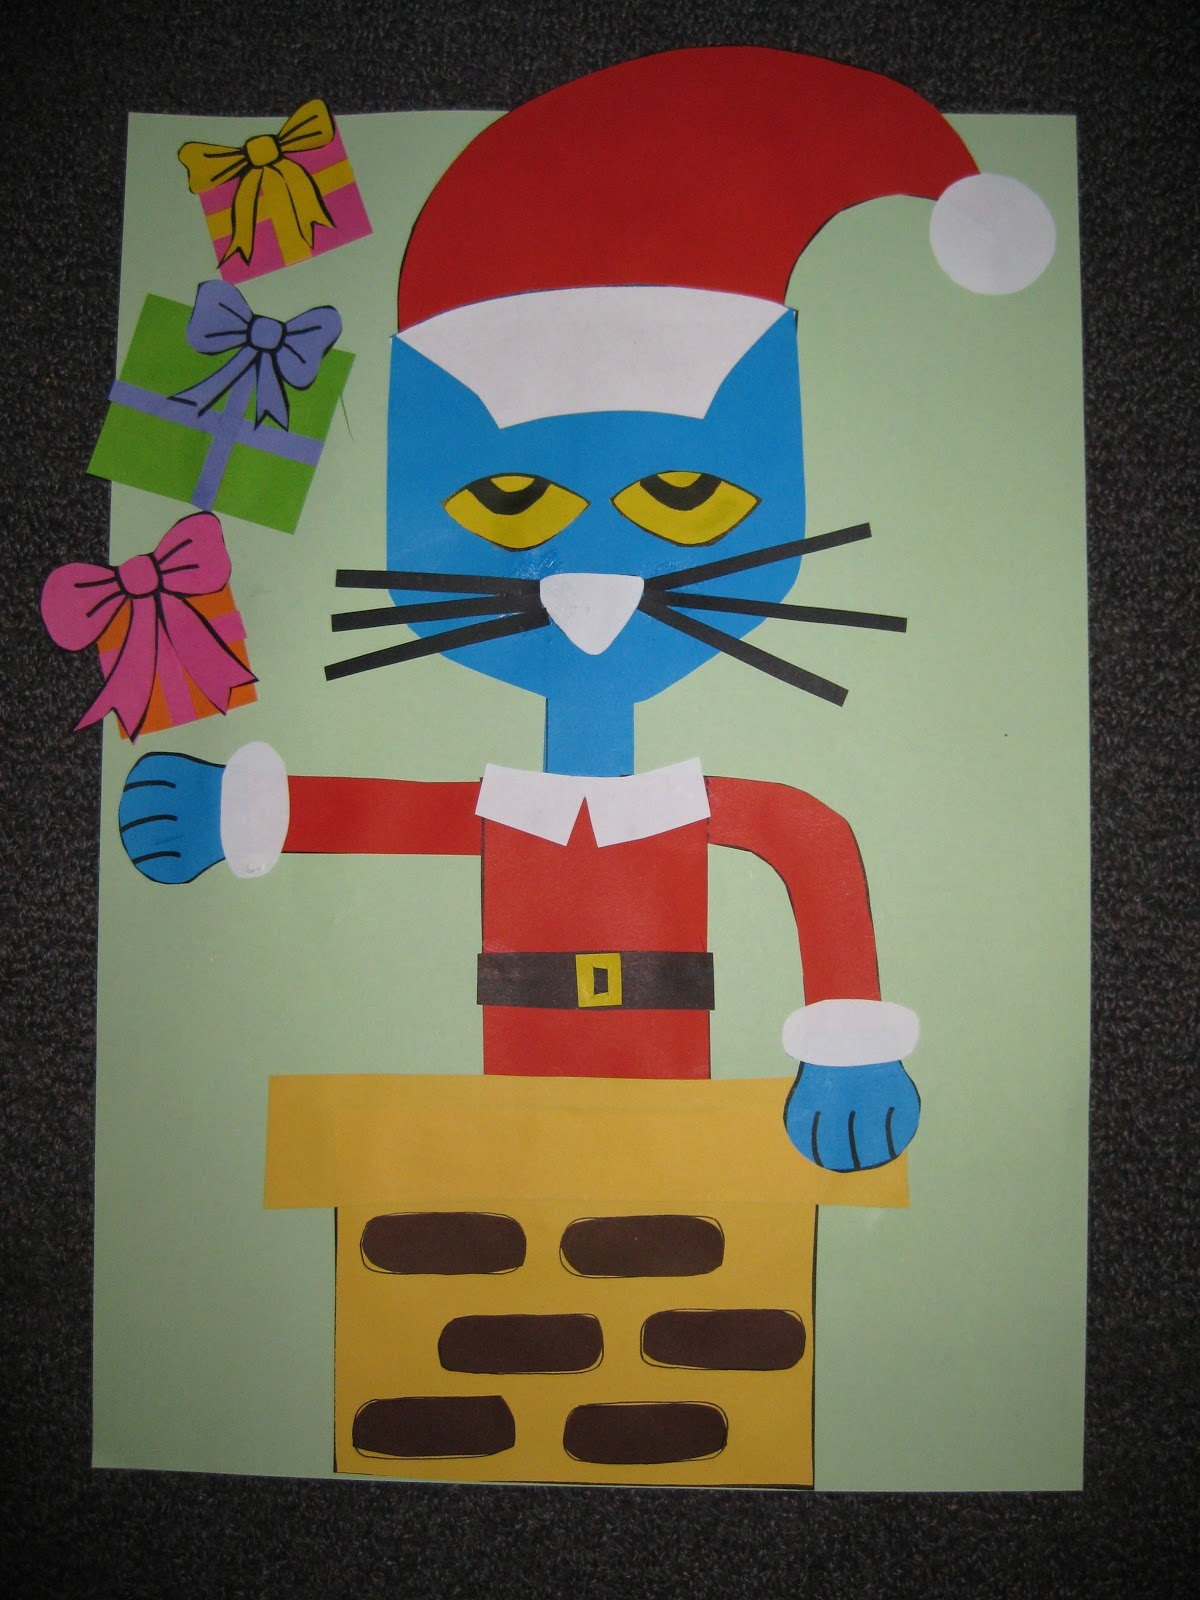 pete the cat saves christmas - Pete The Cat Saves Christmas